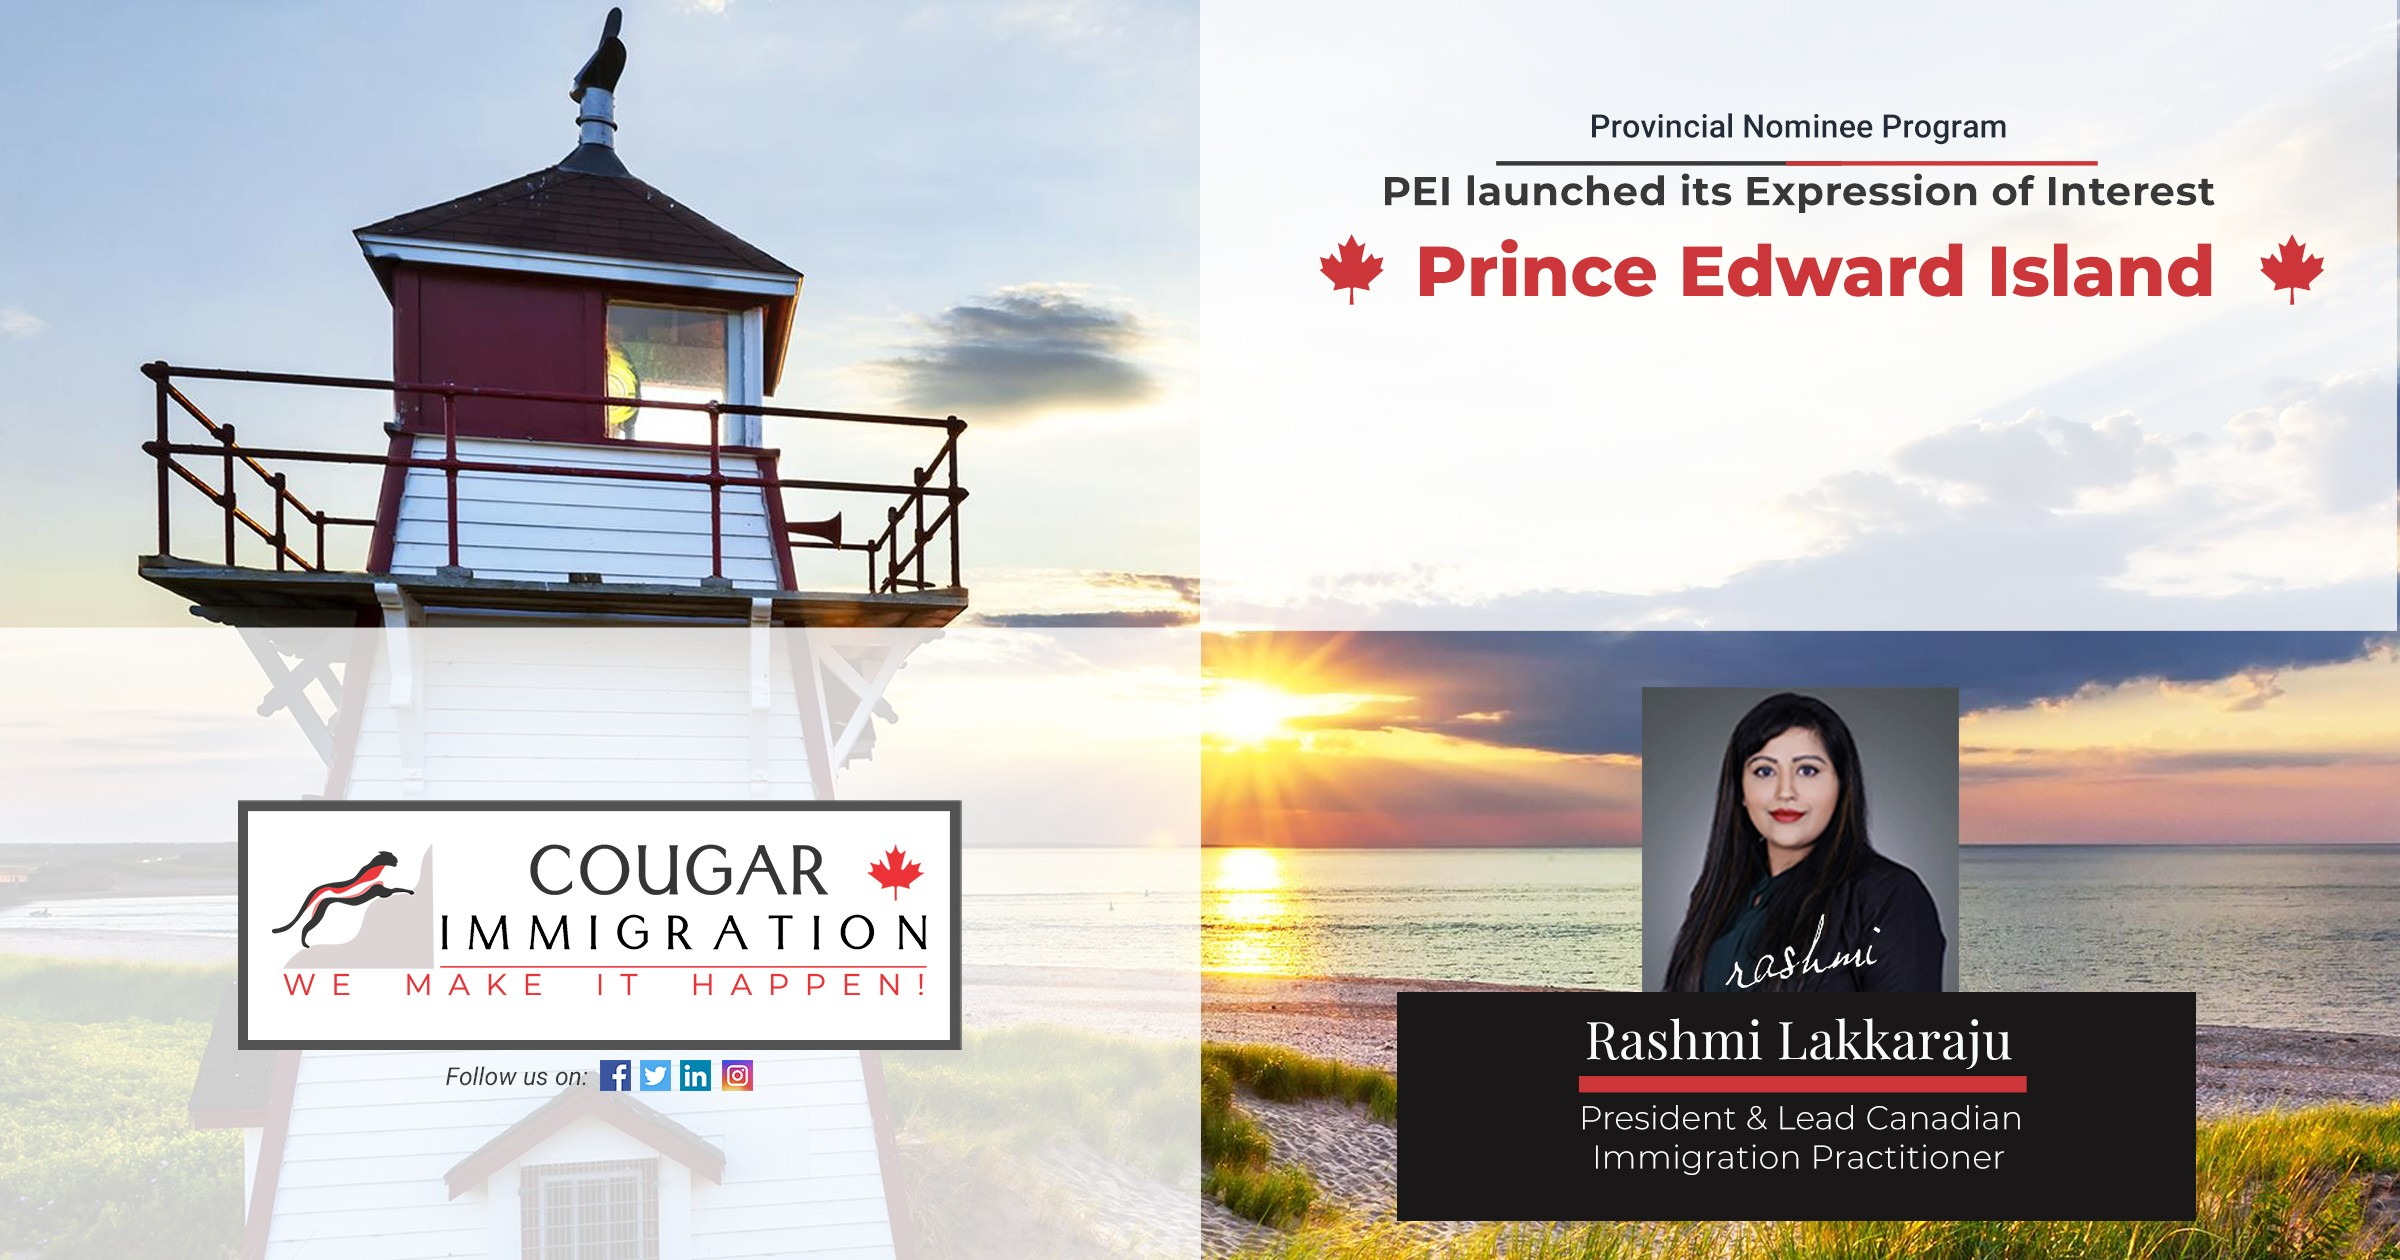 Prince Edward Island To Conduct New Expression of Interest Immigration Draw thumbnail